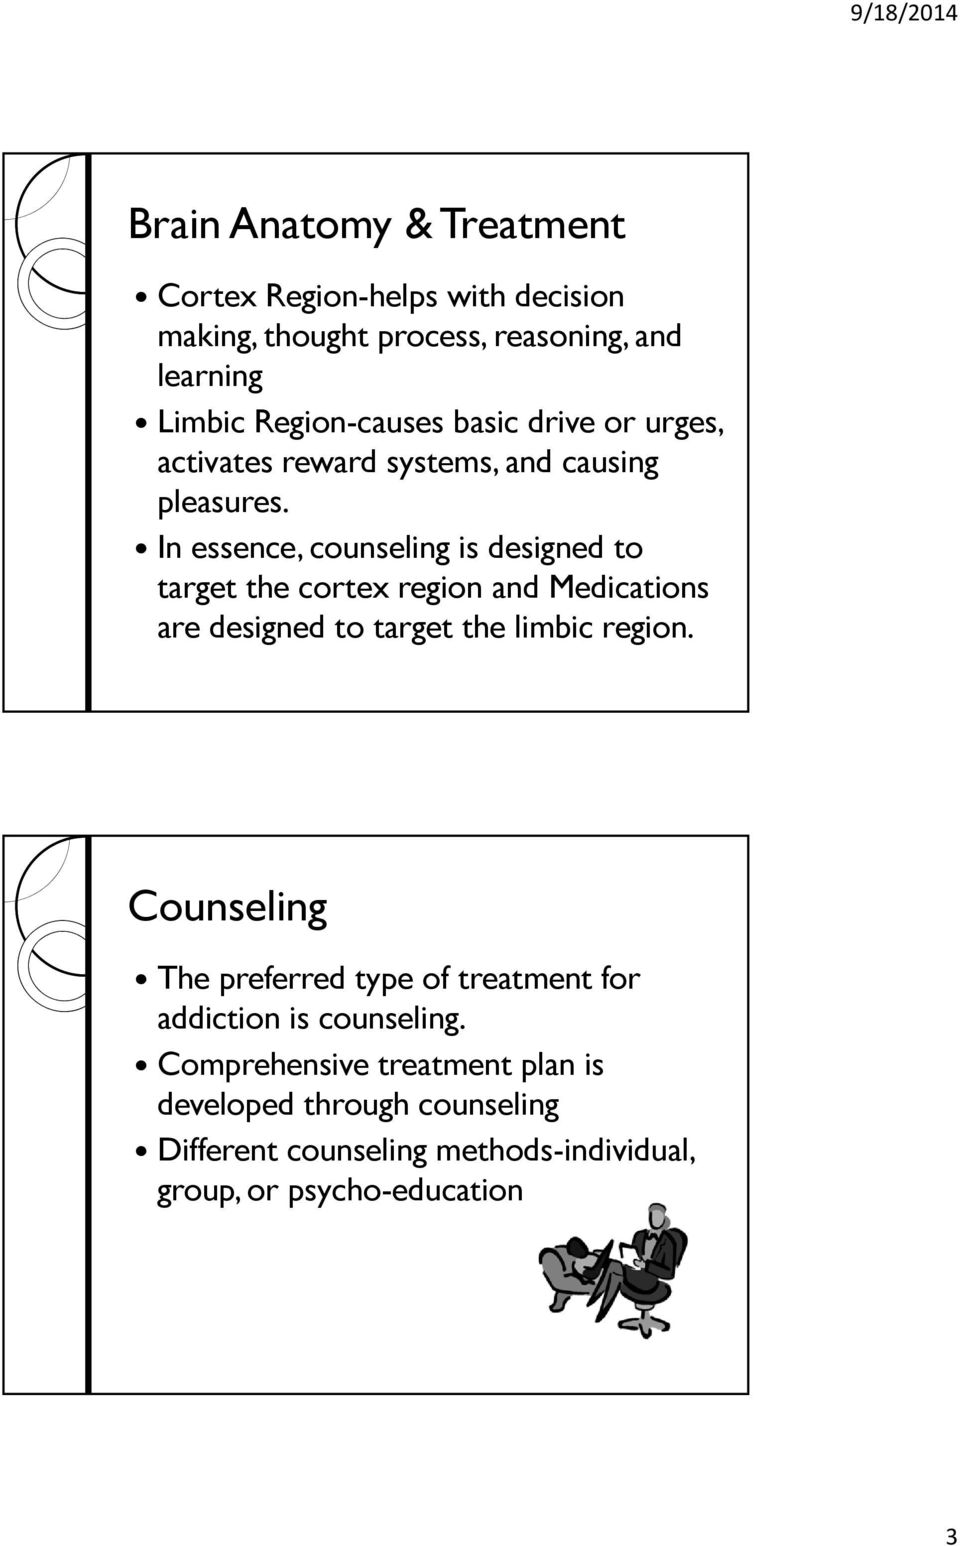 In essence, counseling is designed to target the cortex region and Medications are designed to target the limbic region.